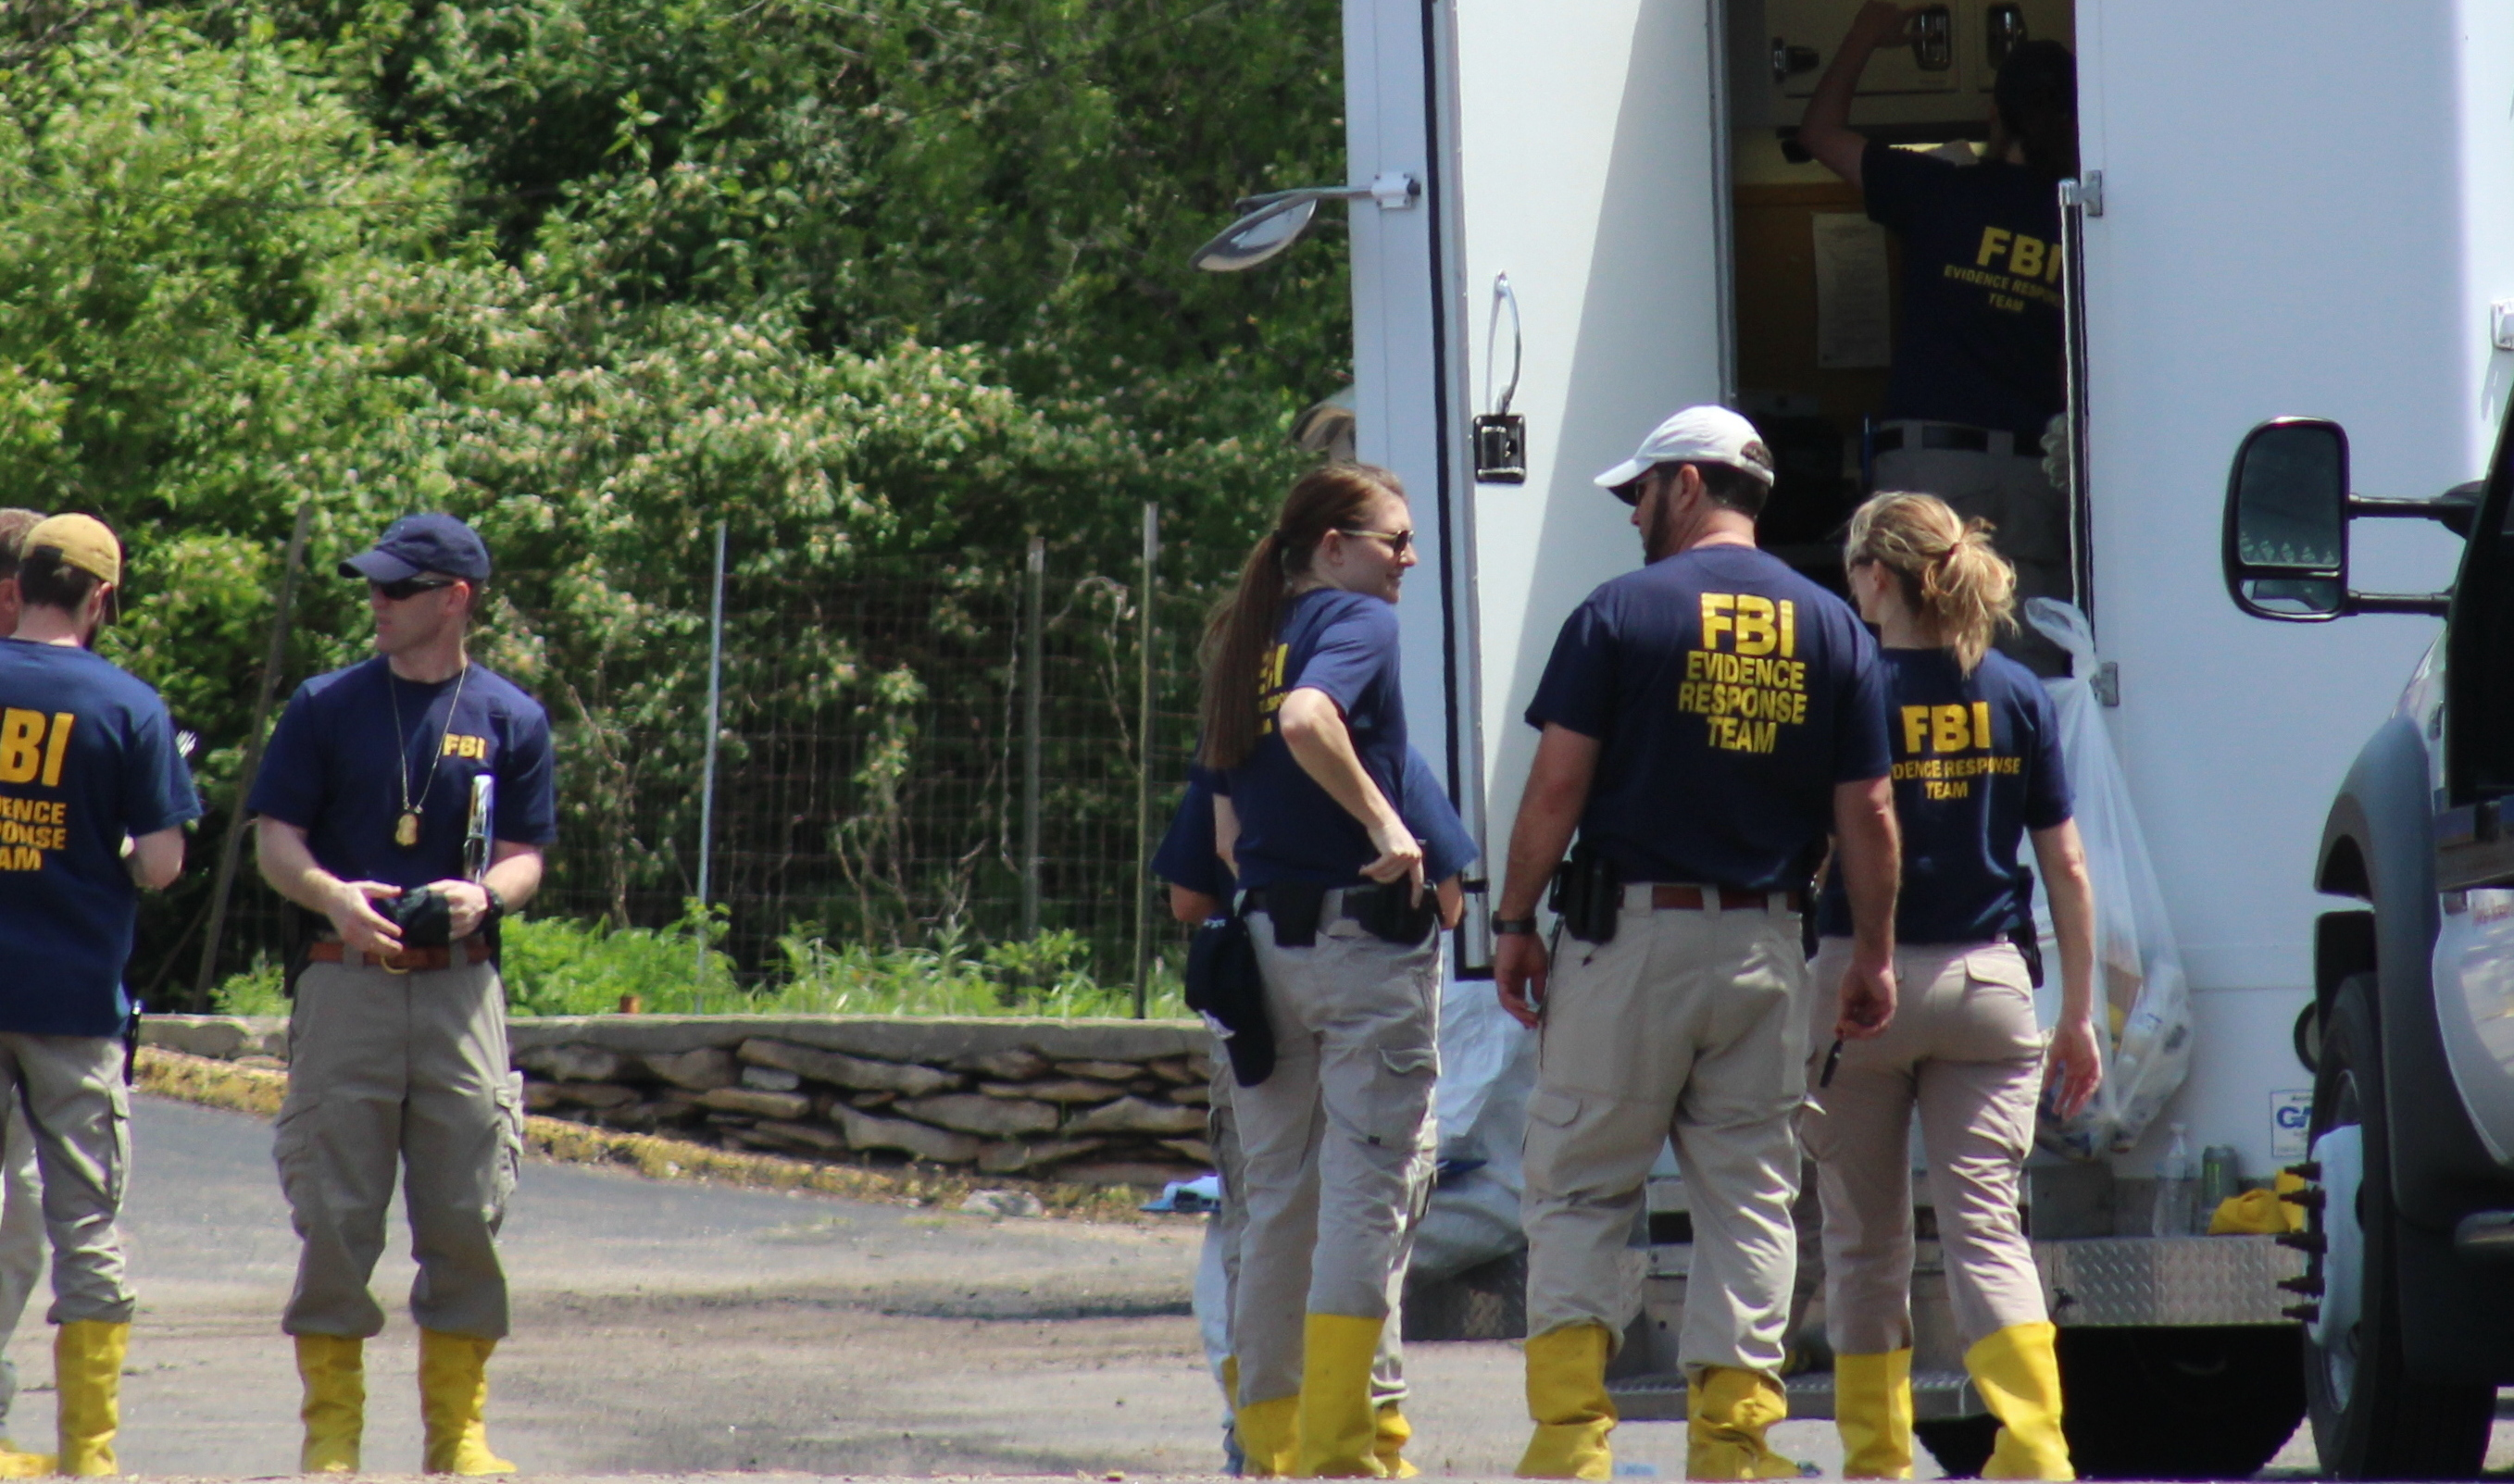 FBI crime scene investigators prepare to sift through the rubble of the burned-out Country Club Motel, where Saturday night's shootout and fire took place.  (Photo by J. Schafer)